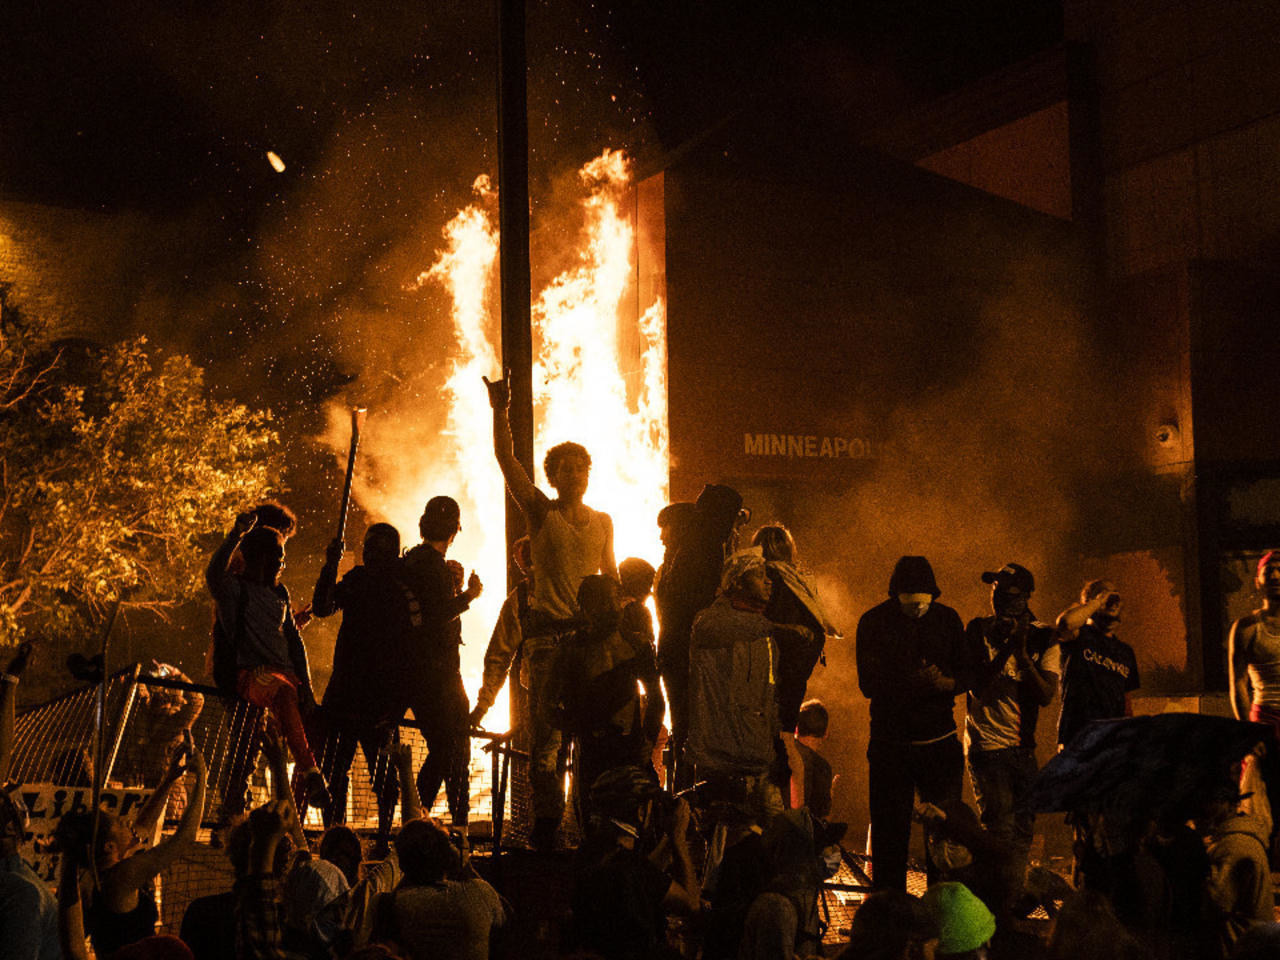 Riots erupt in several US cities over Minnesota police killing of unarmed  black man